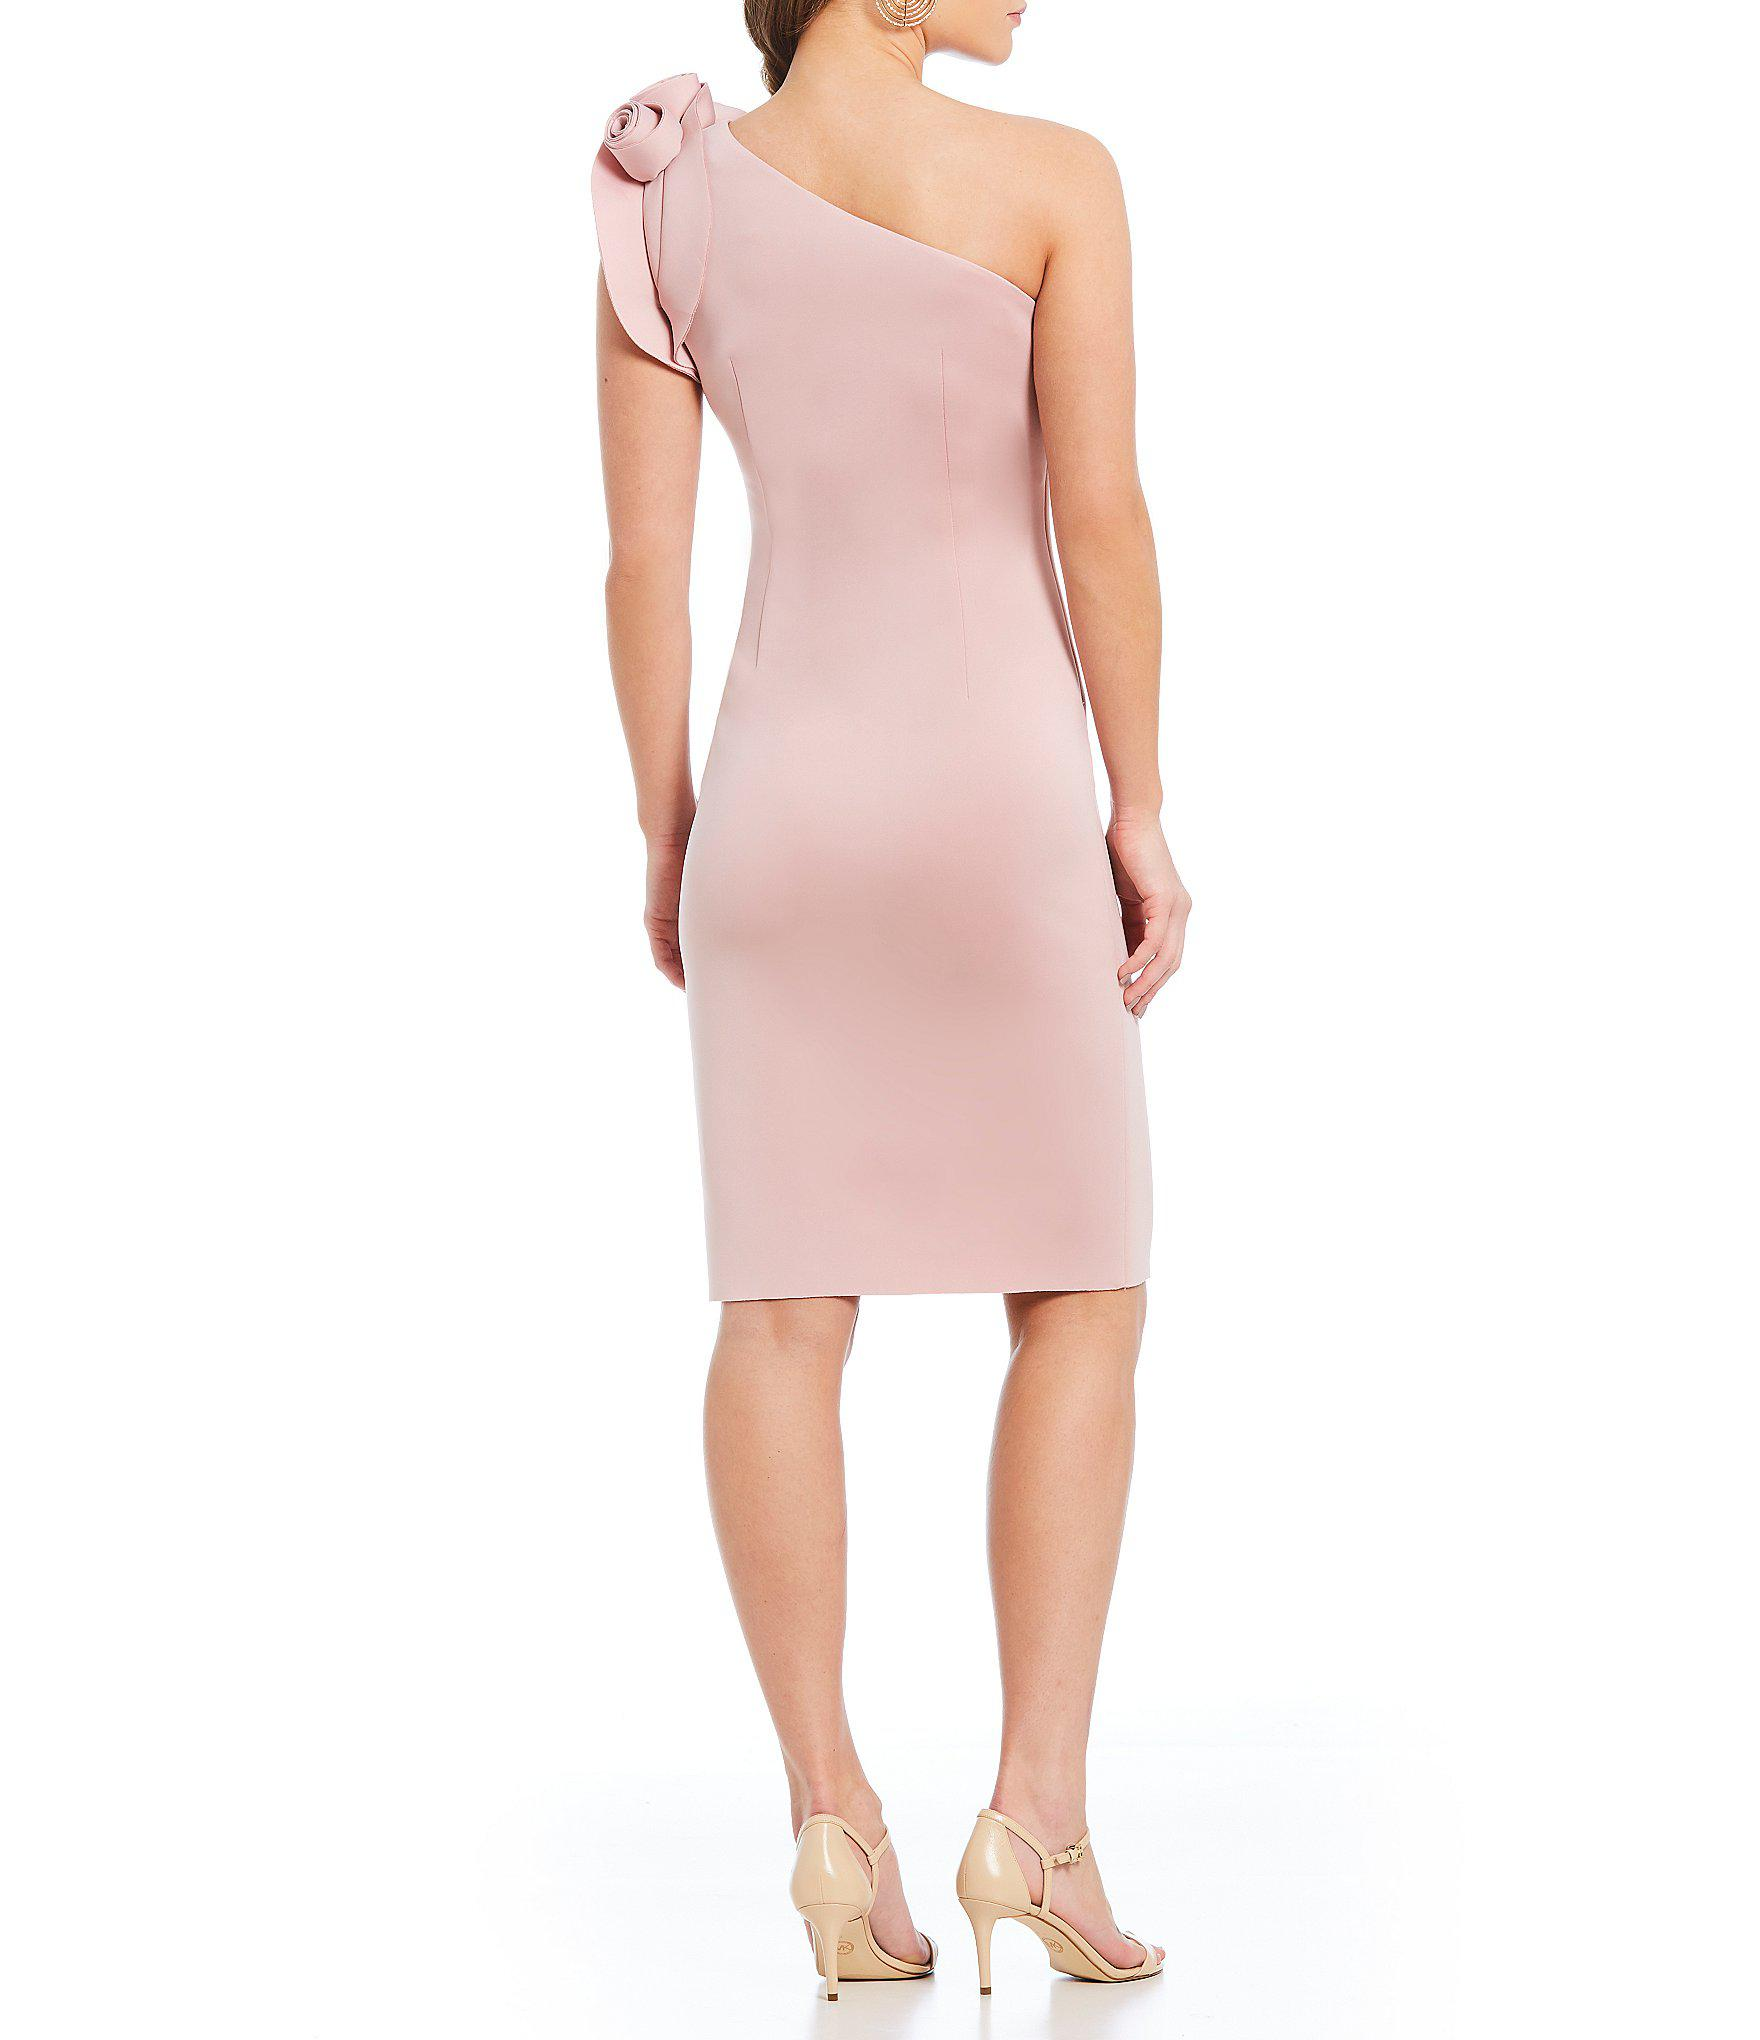 240b4a5a Eliza J - Pink One Shoulder Ruffle Sleeve Sheath Dress - Lyst. View  fullscreen